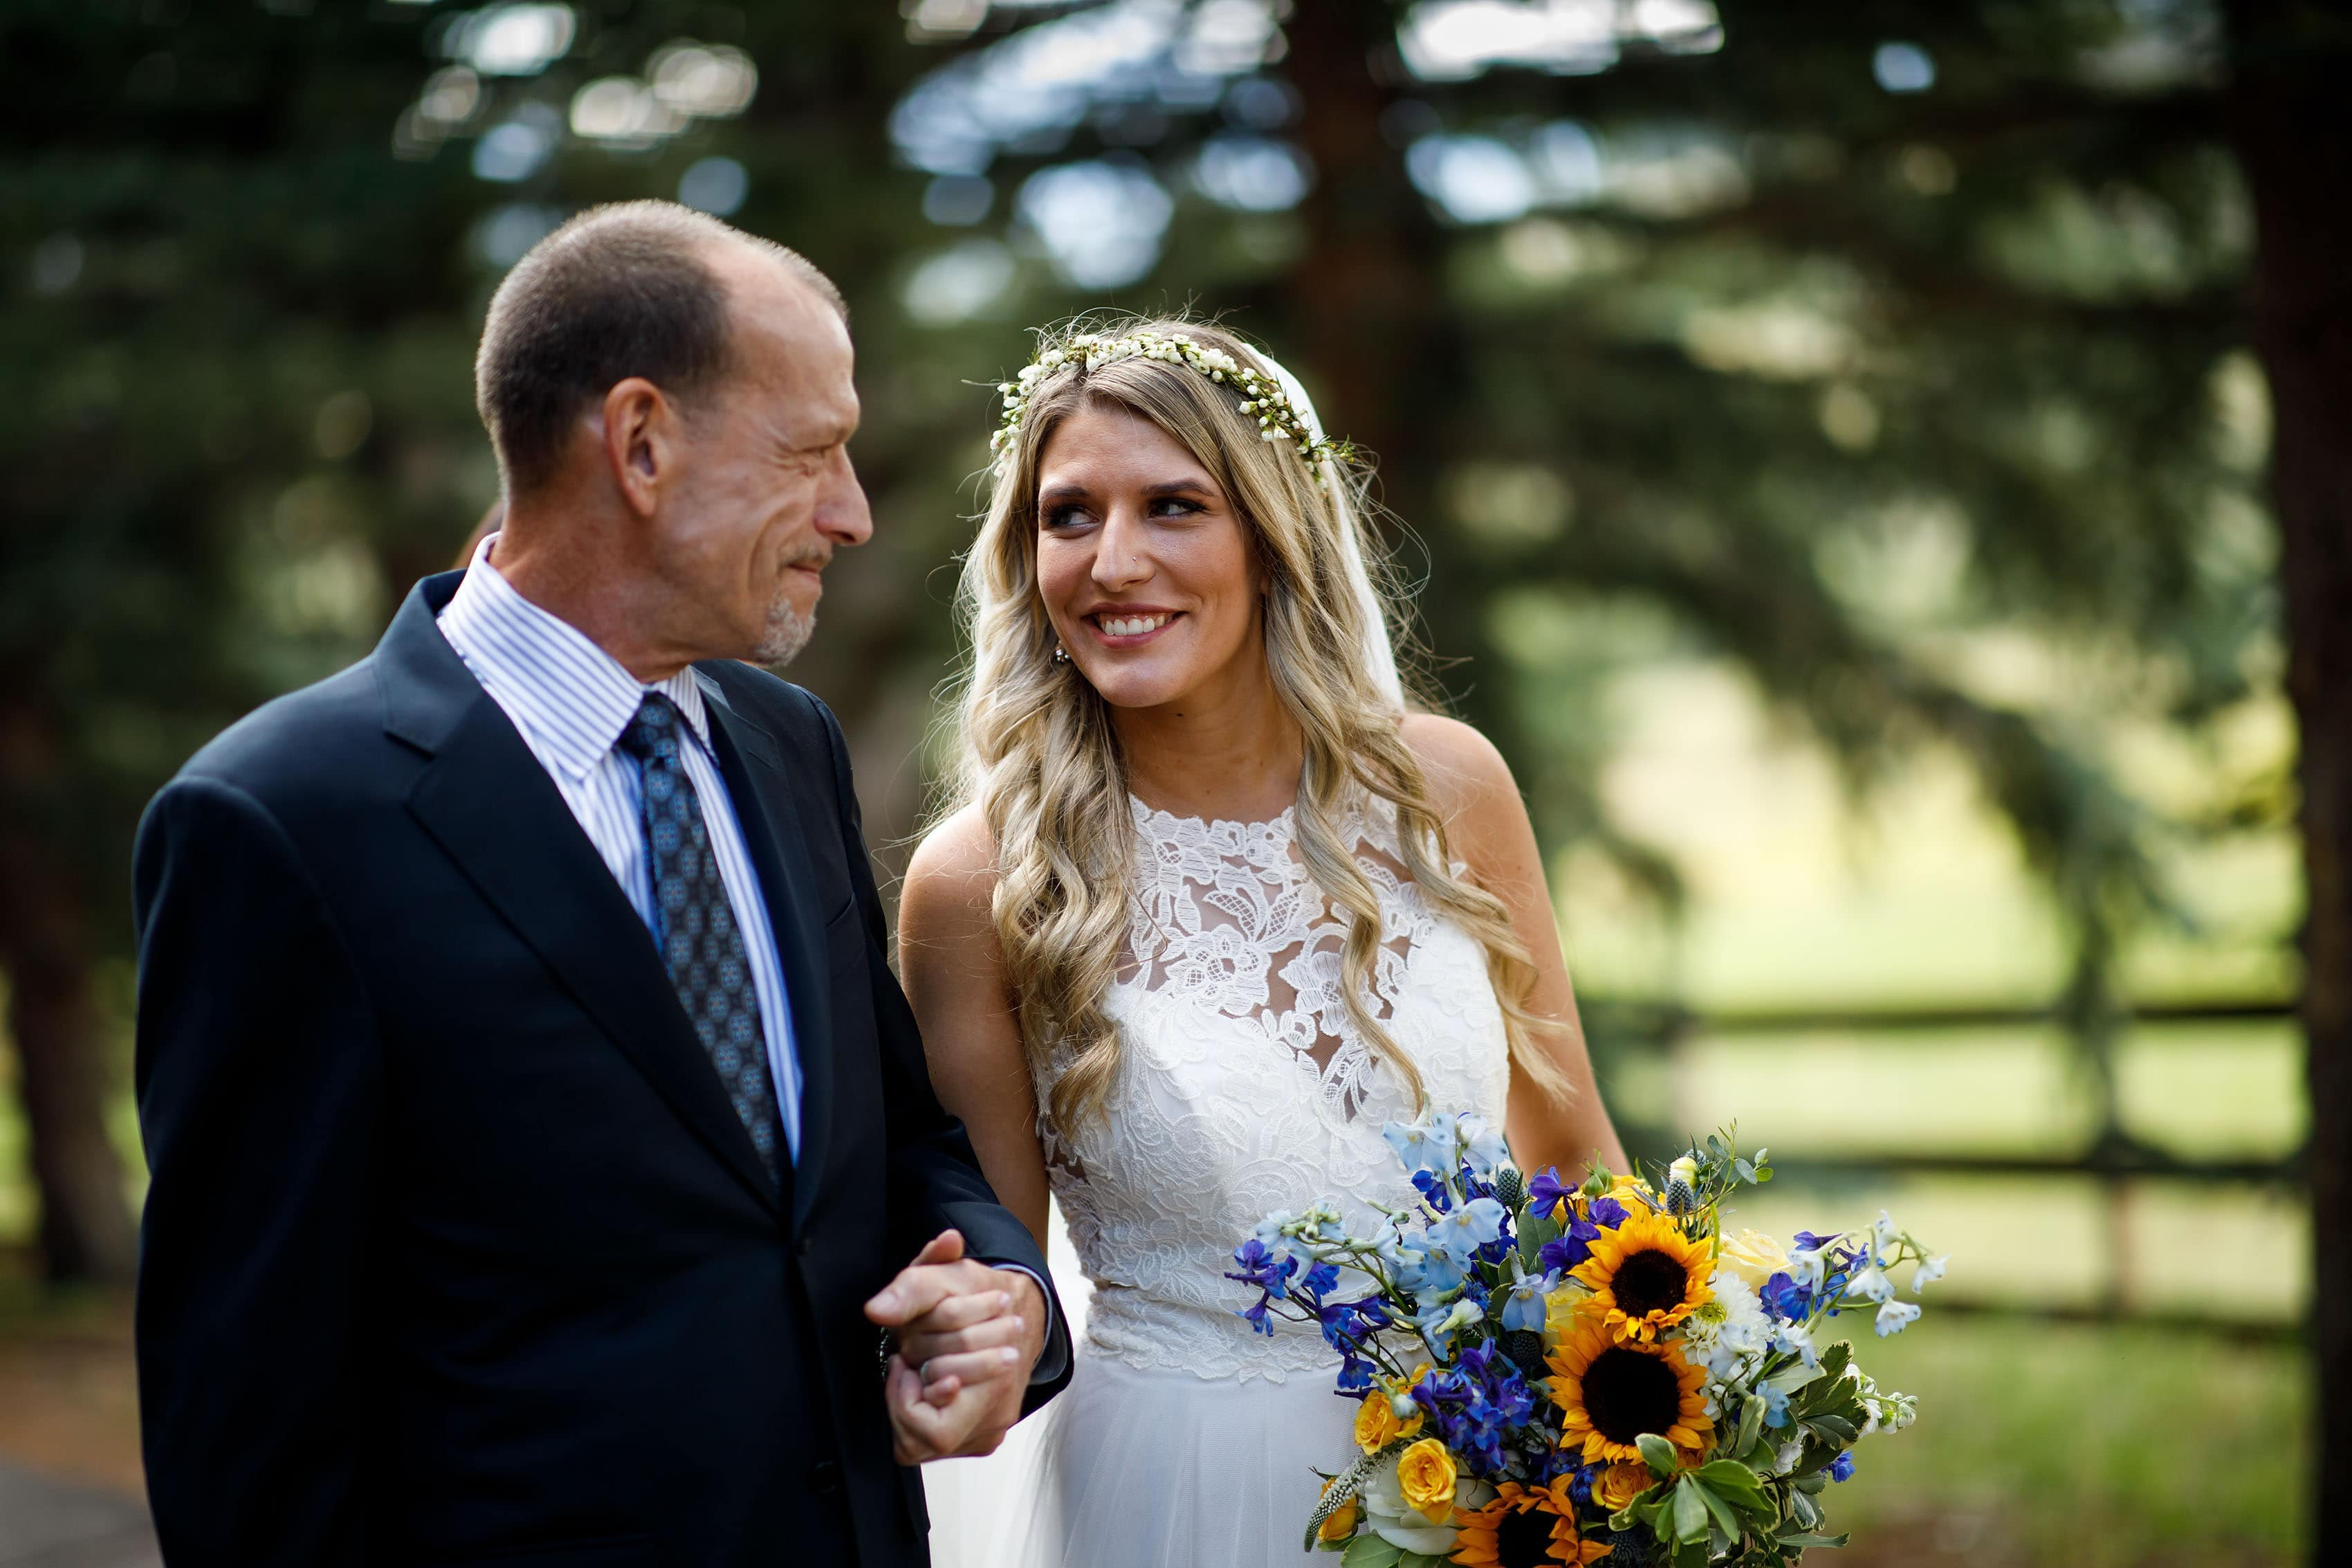 The bride and her father before the ceremony at Deer Creek Valley Ranch